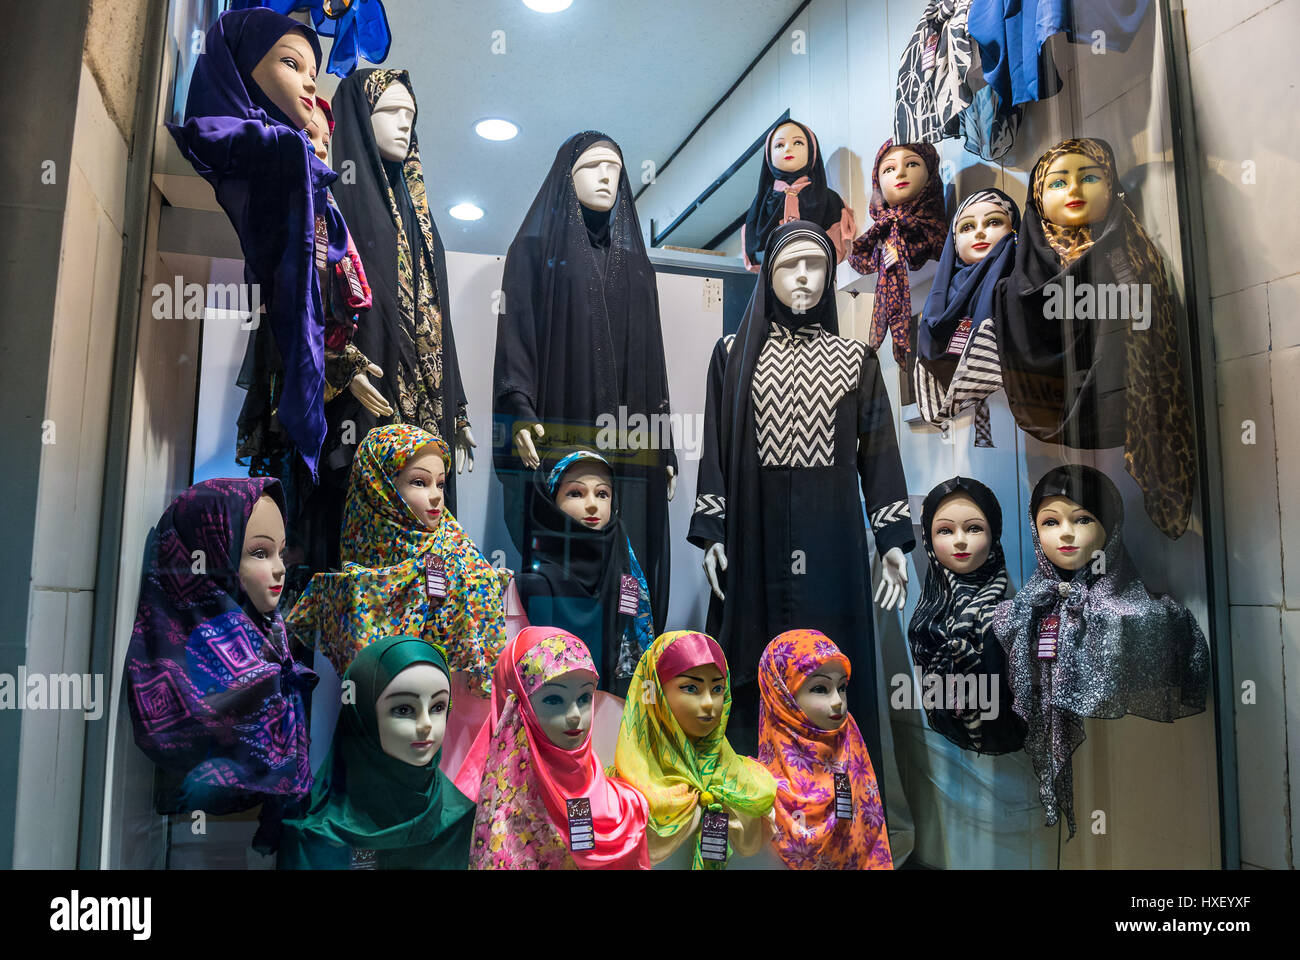 Hijabs and chadors for sale in clothes shop Isfahan, capital of Isfahan Province in Iran - Stock Image